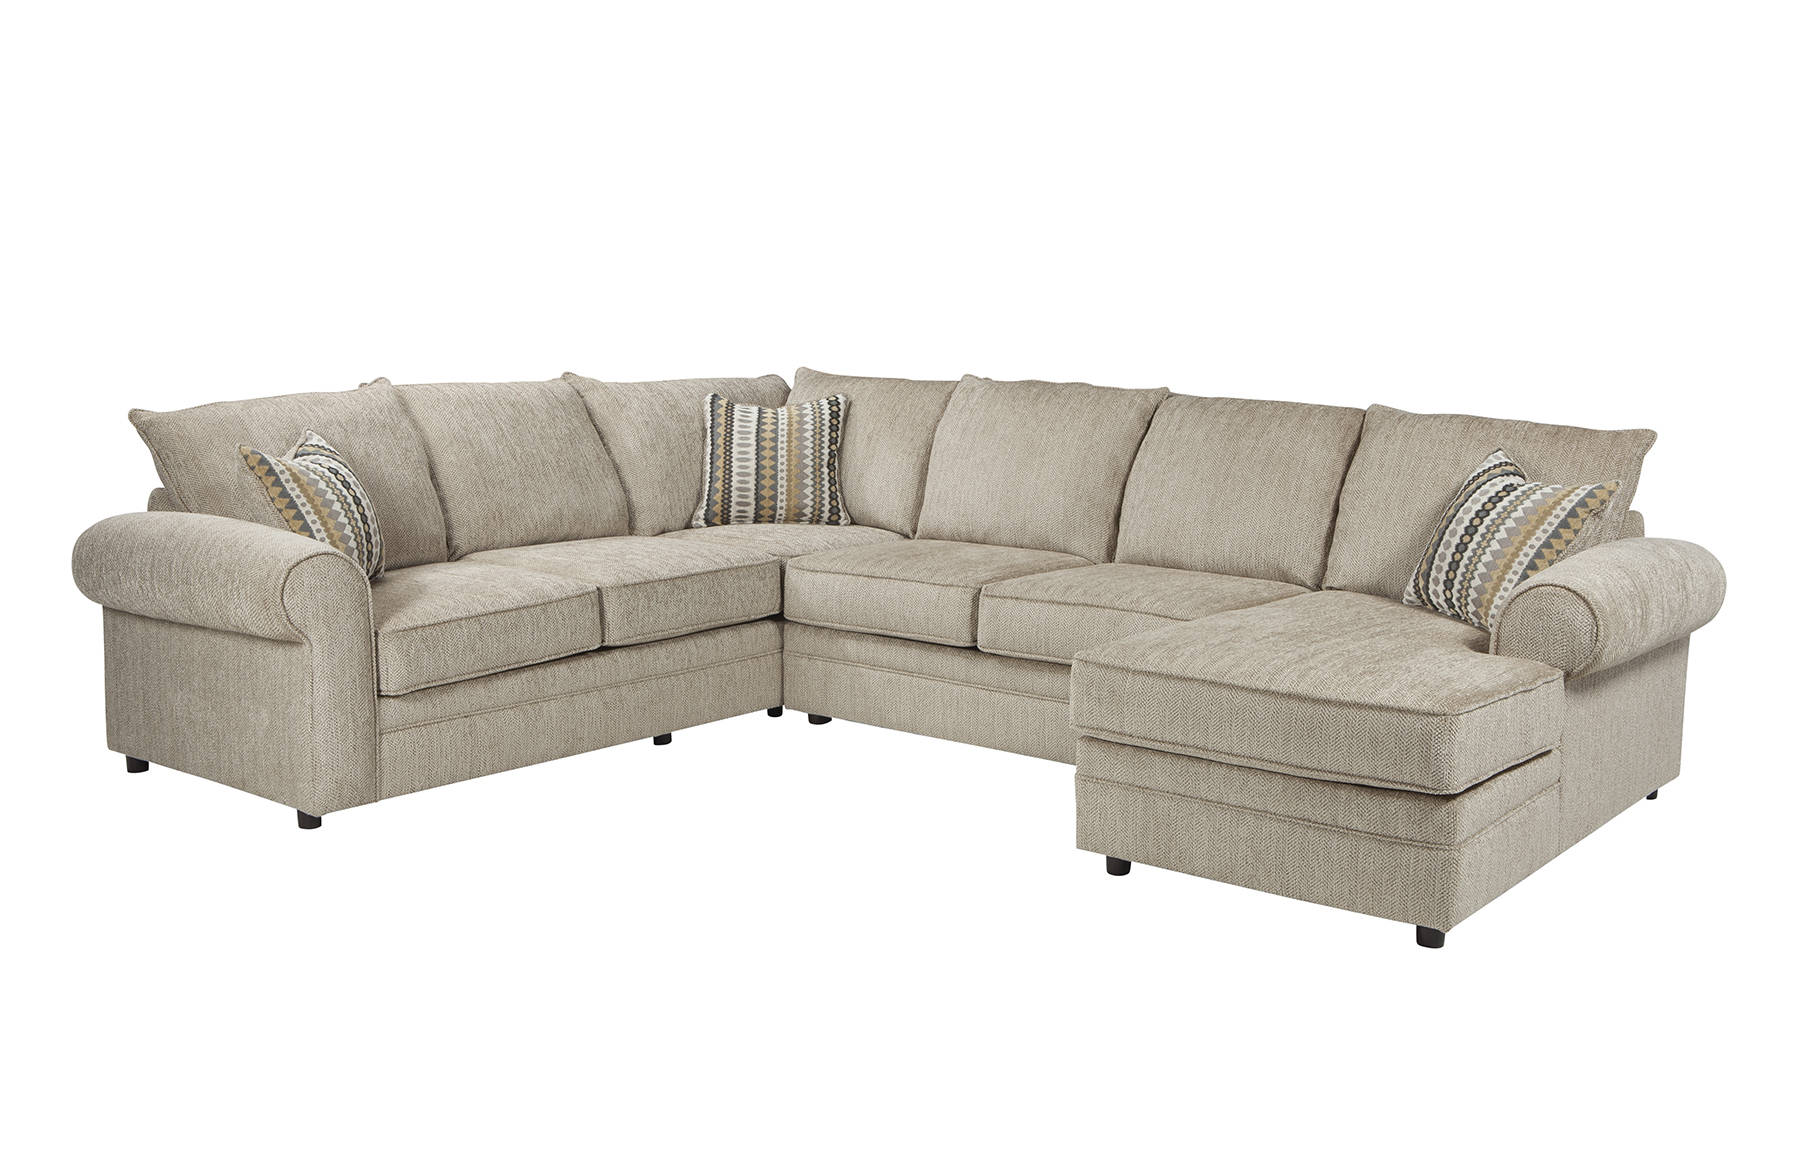 Coaster Furniture Fairhaven Cream Sectional | The Classy Home